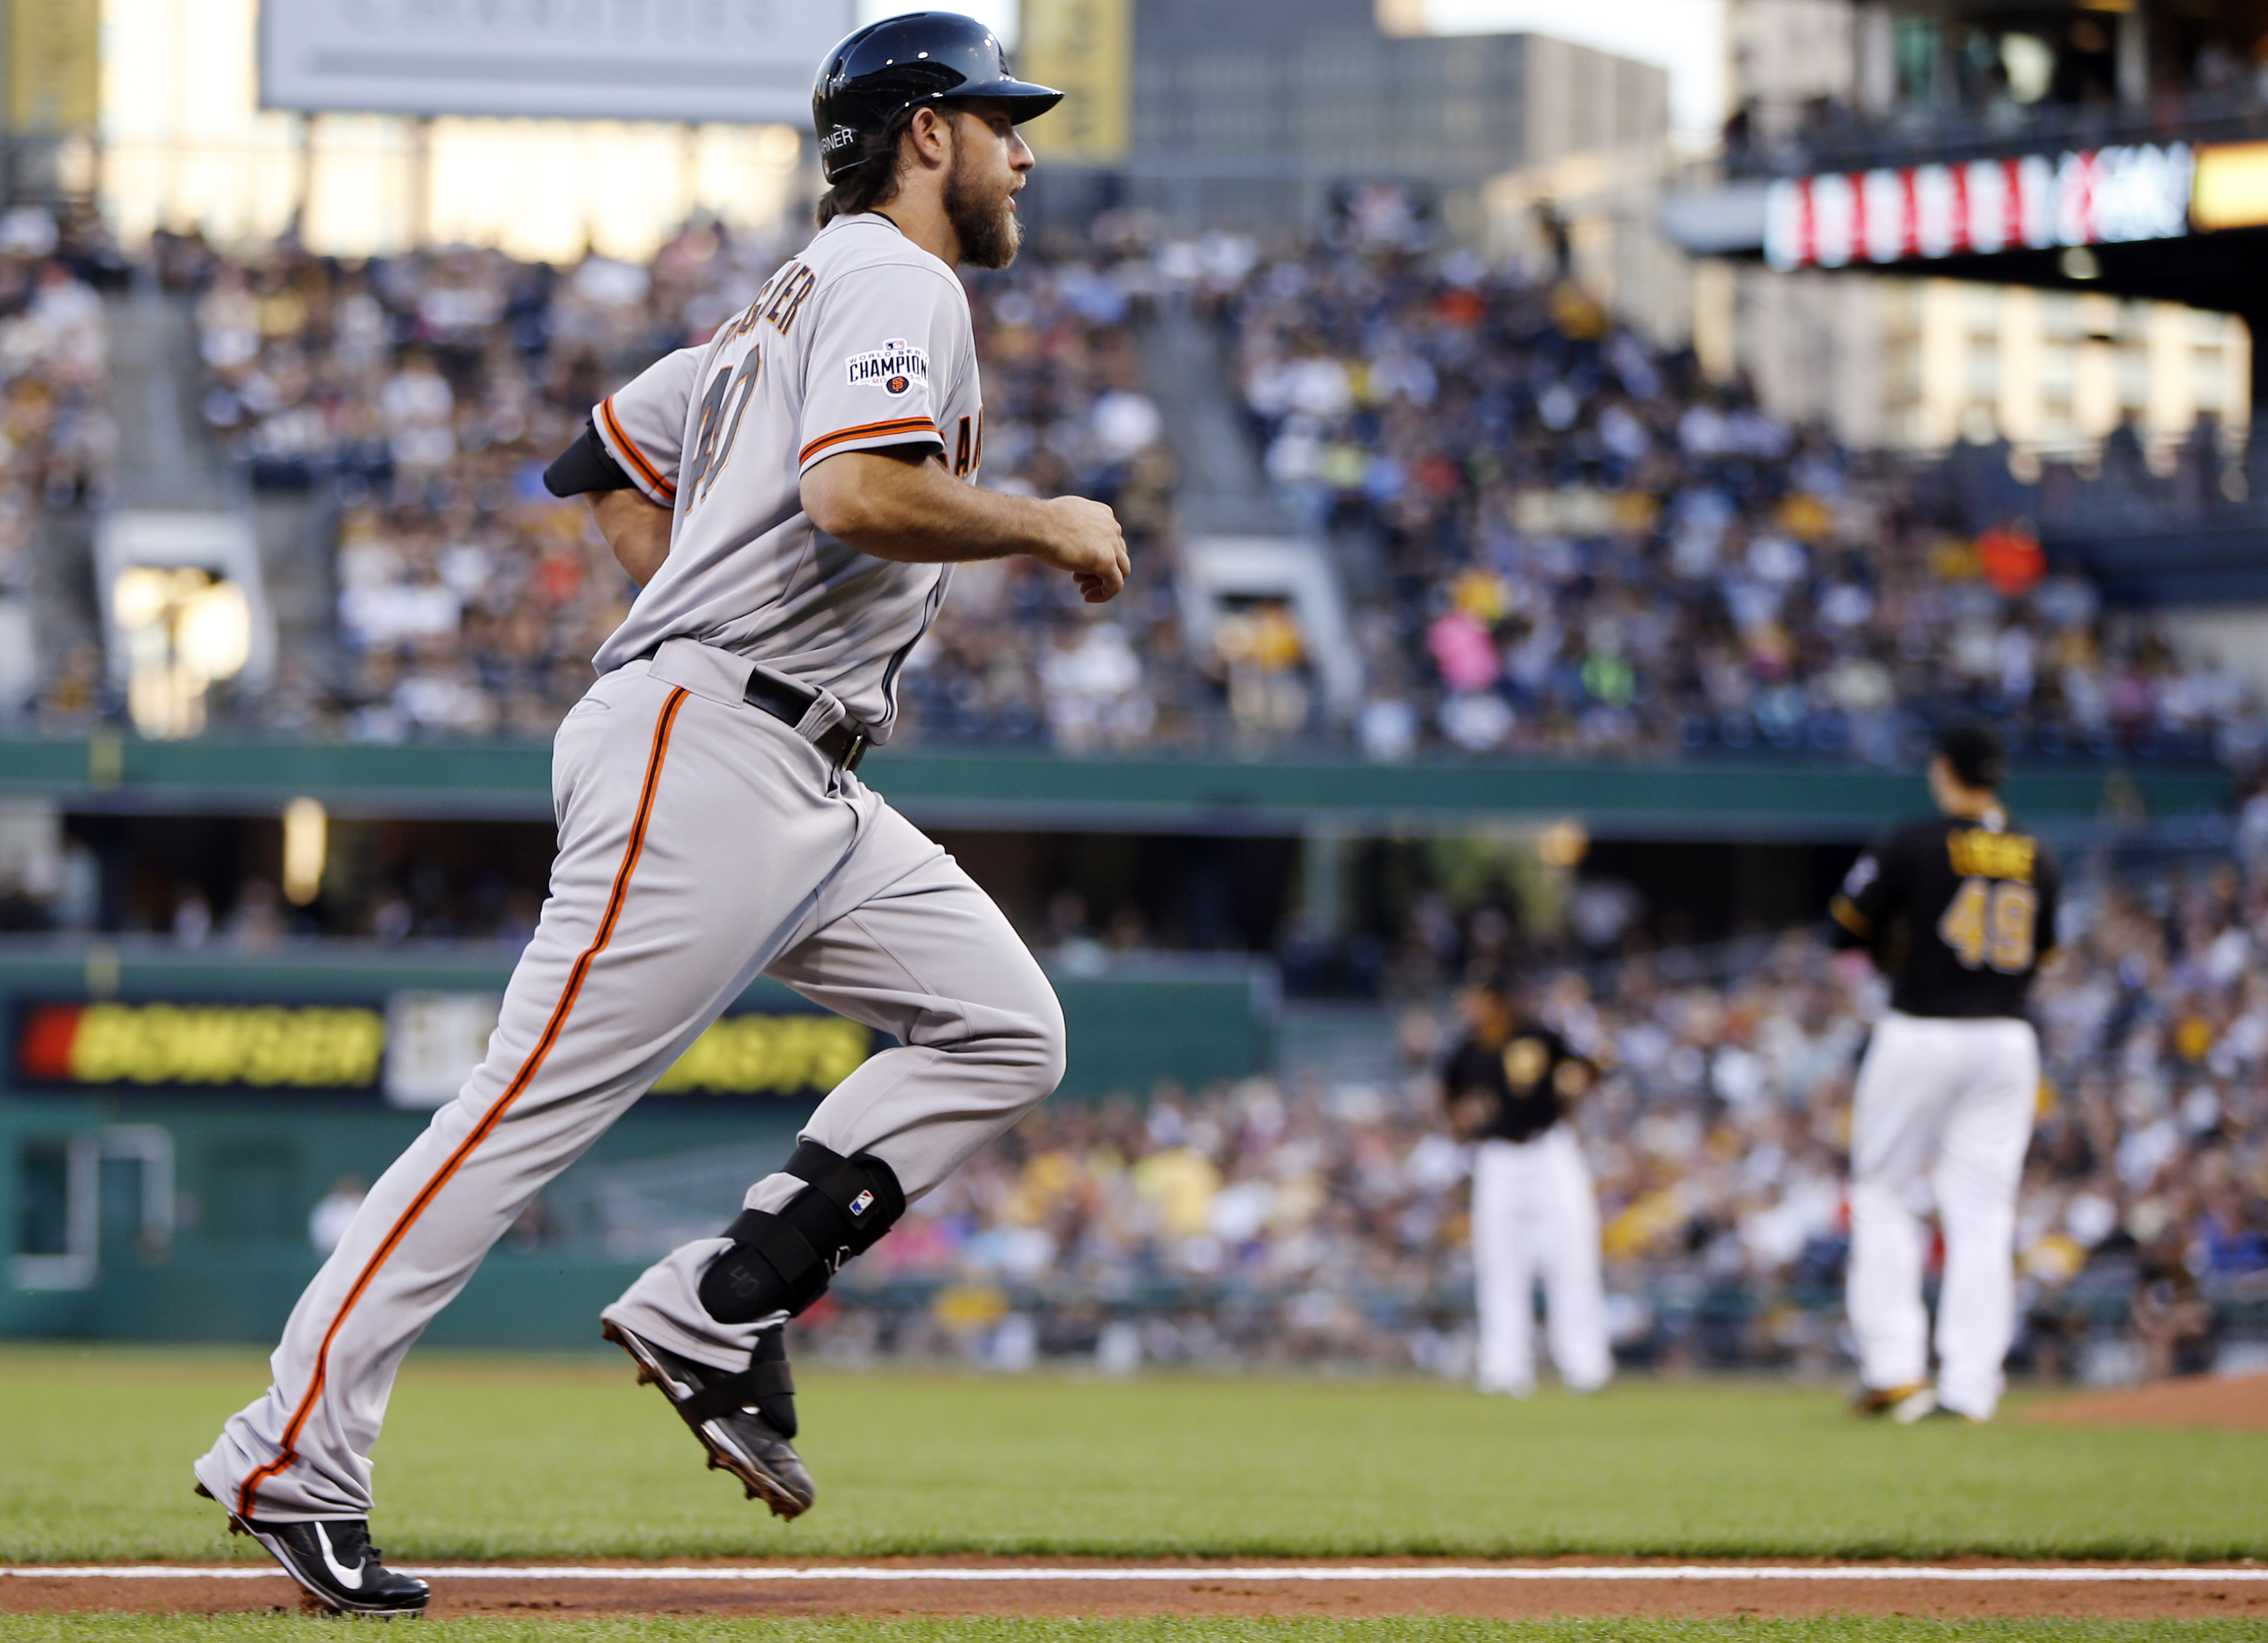 San Francisco Giants starting pitcher Madison Bumgarner, left, rounds the bases after hitting a two-run home run off Pittsburgh Pirates starting pitcher Jeff Locke, right, in the second inning of a baseball game, Friday, Aug. 21, 2015, in Pittsburgh. (AP